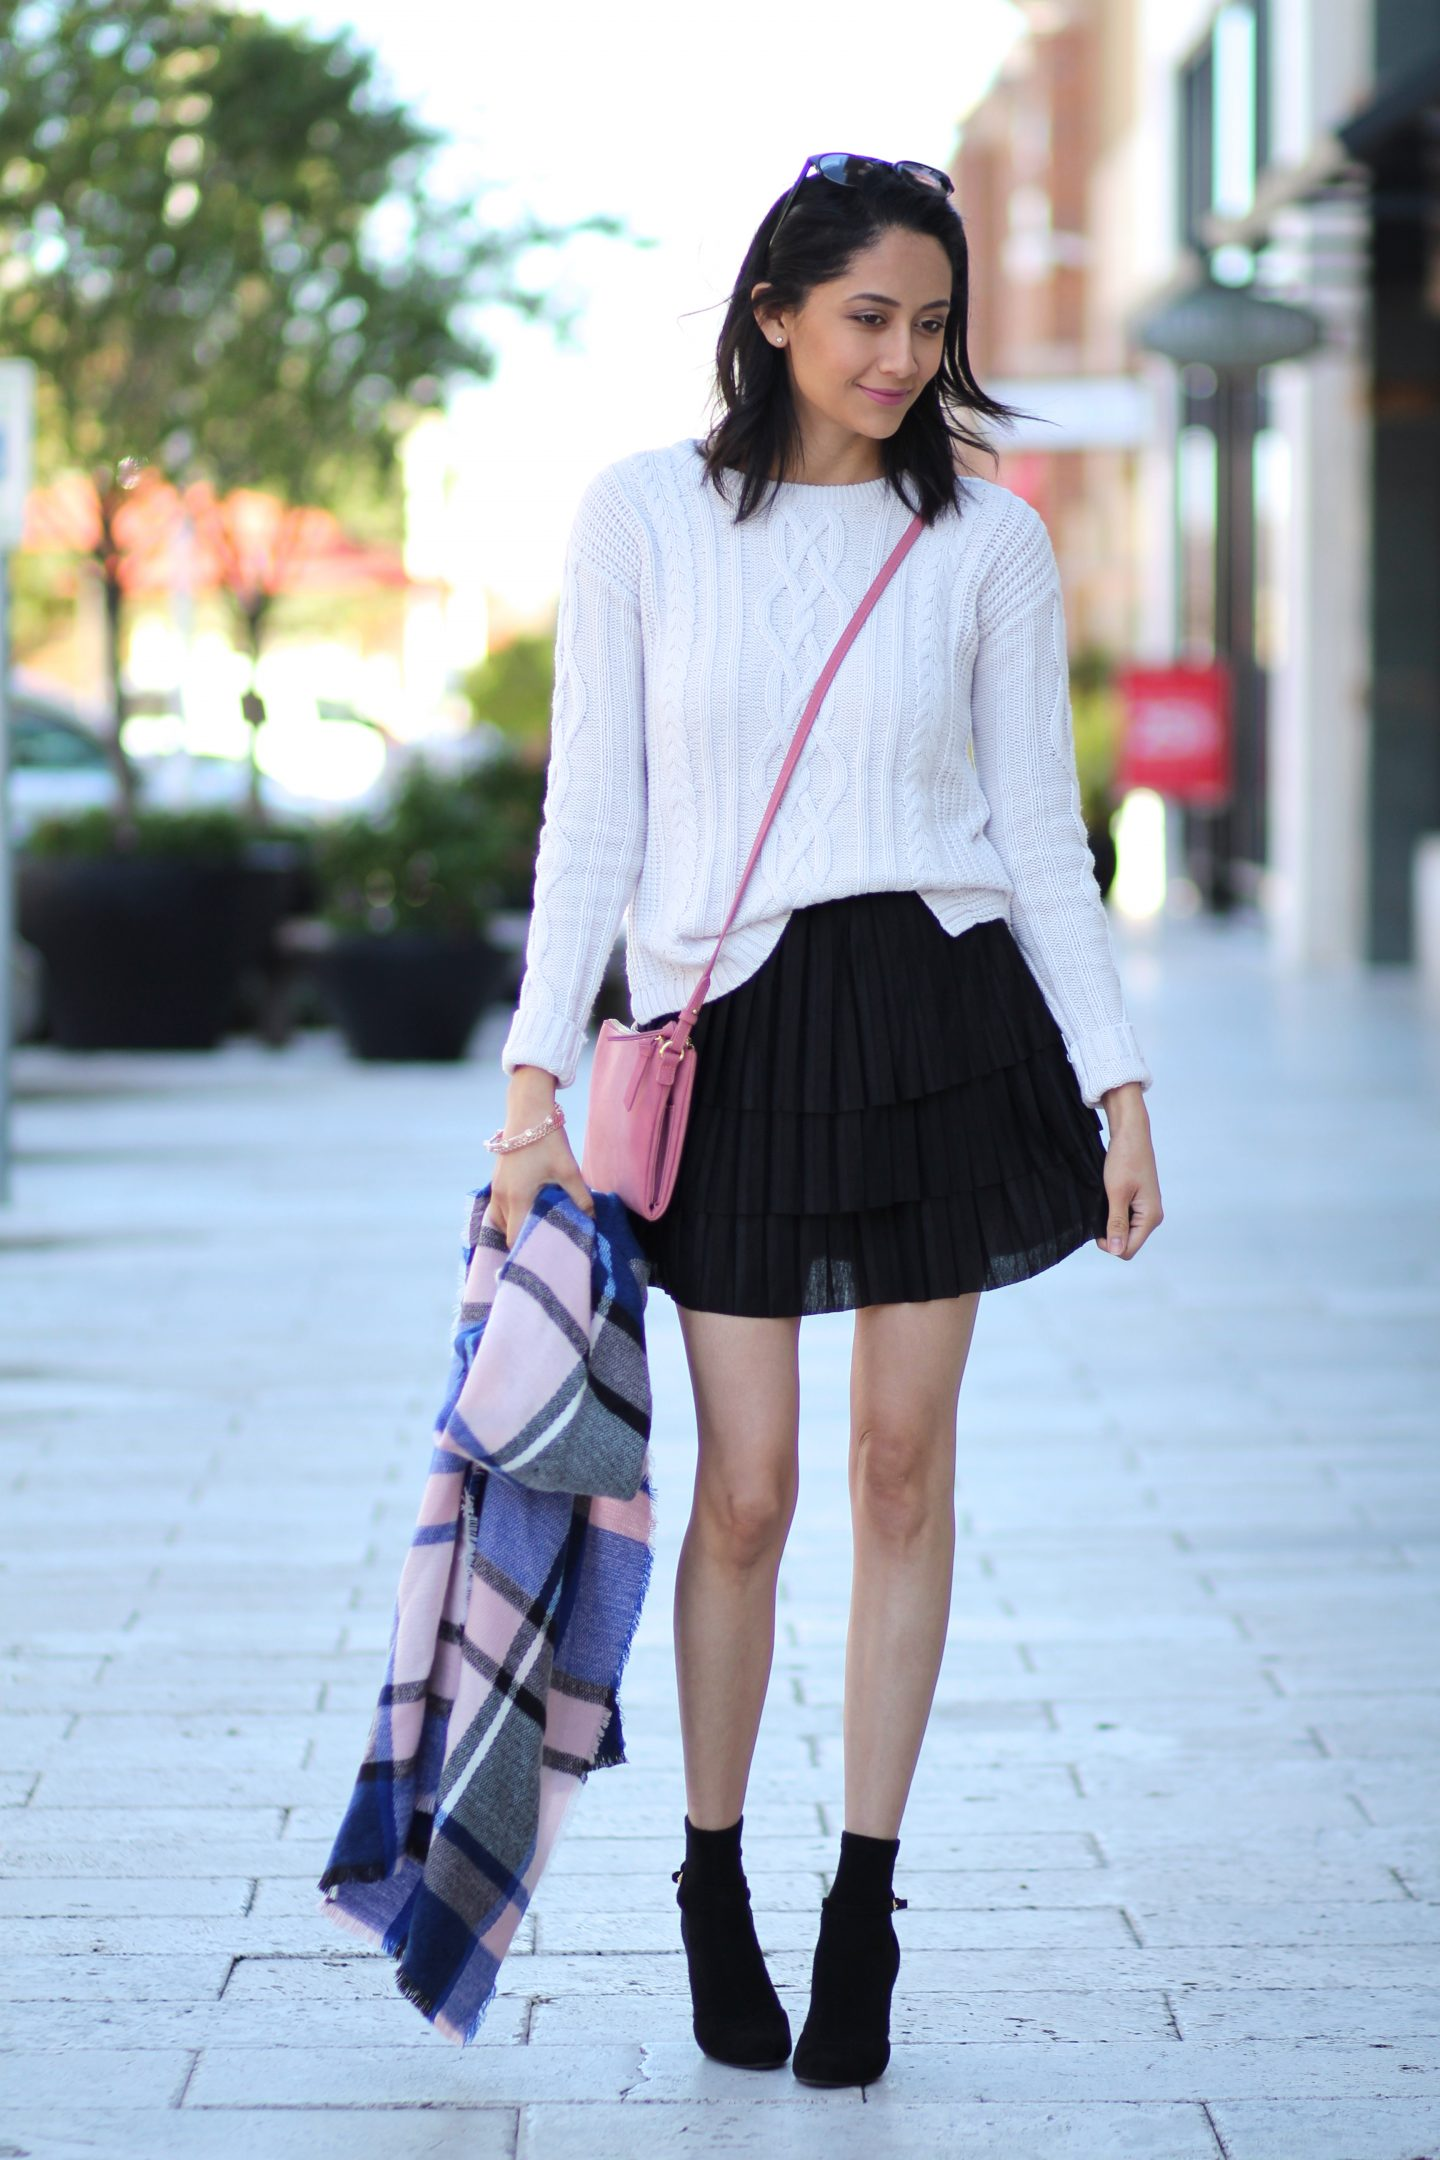 Fashion blogger Daily Craving in a casual holiday outfit with a cable knit sweater and pleated skirt